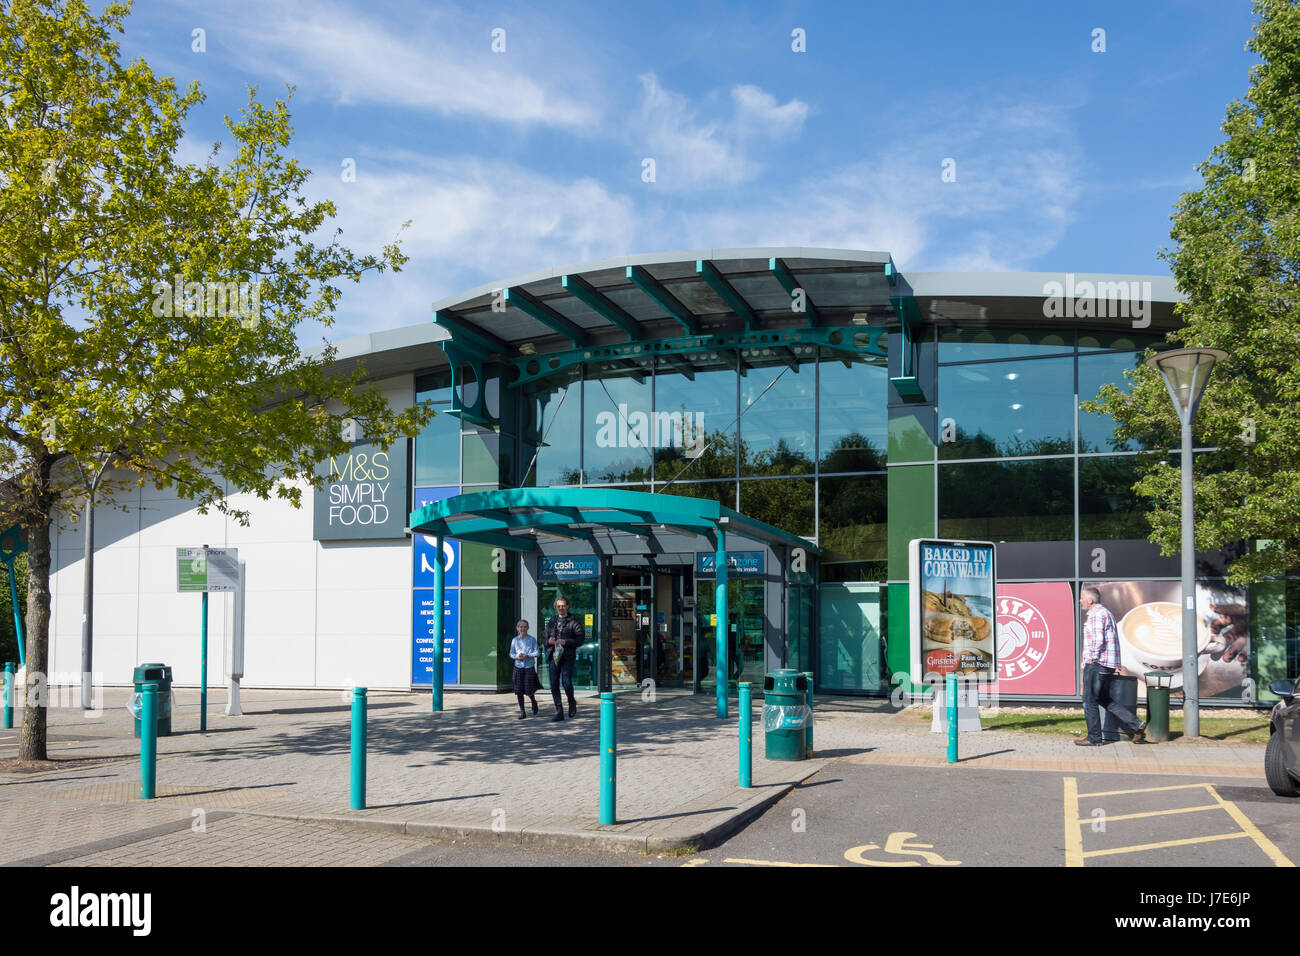 Winchester M3 Motorway Services, Winchester, Hampshire, England, United Kingdom - Stock Image